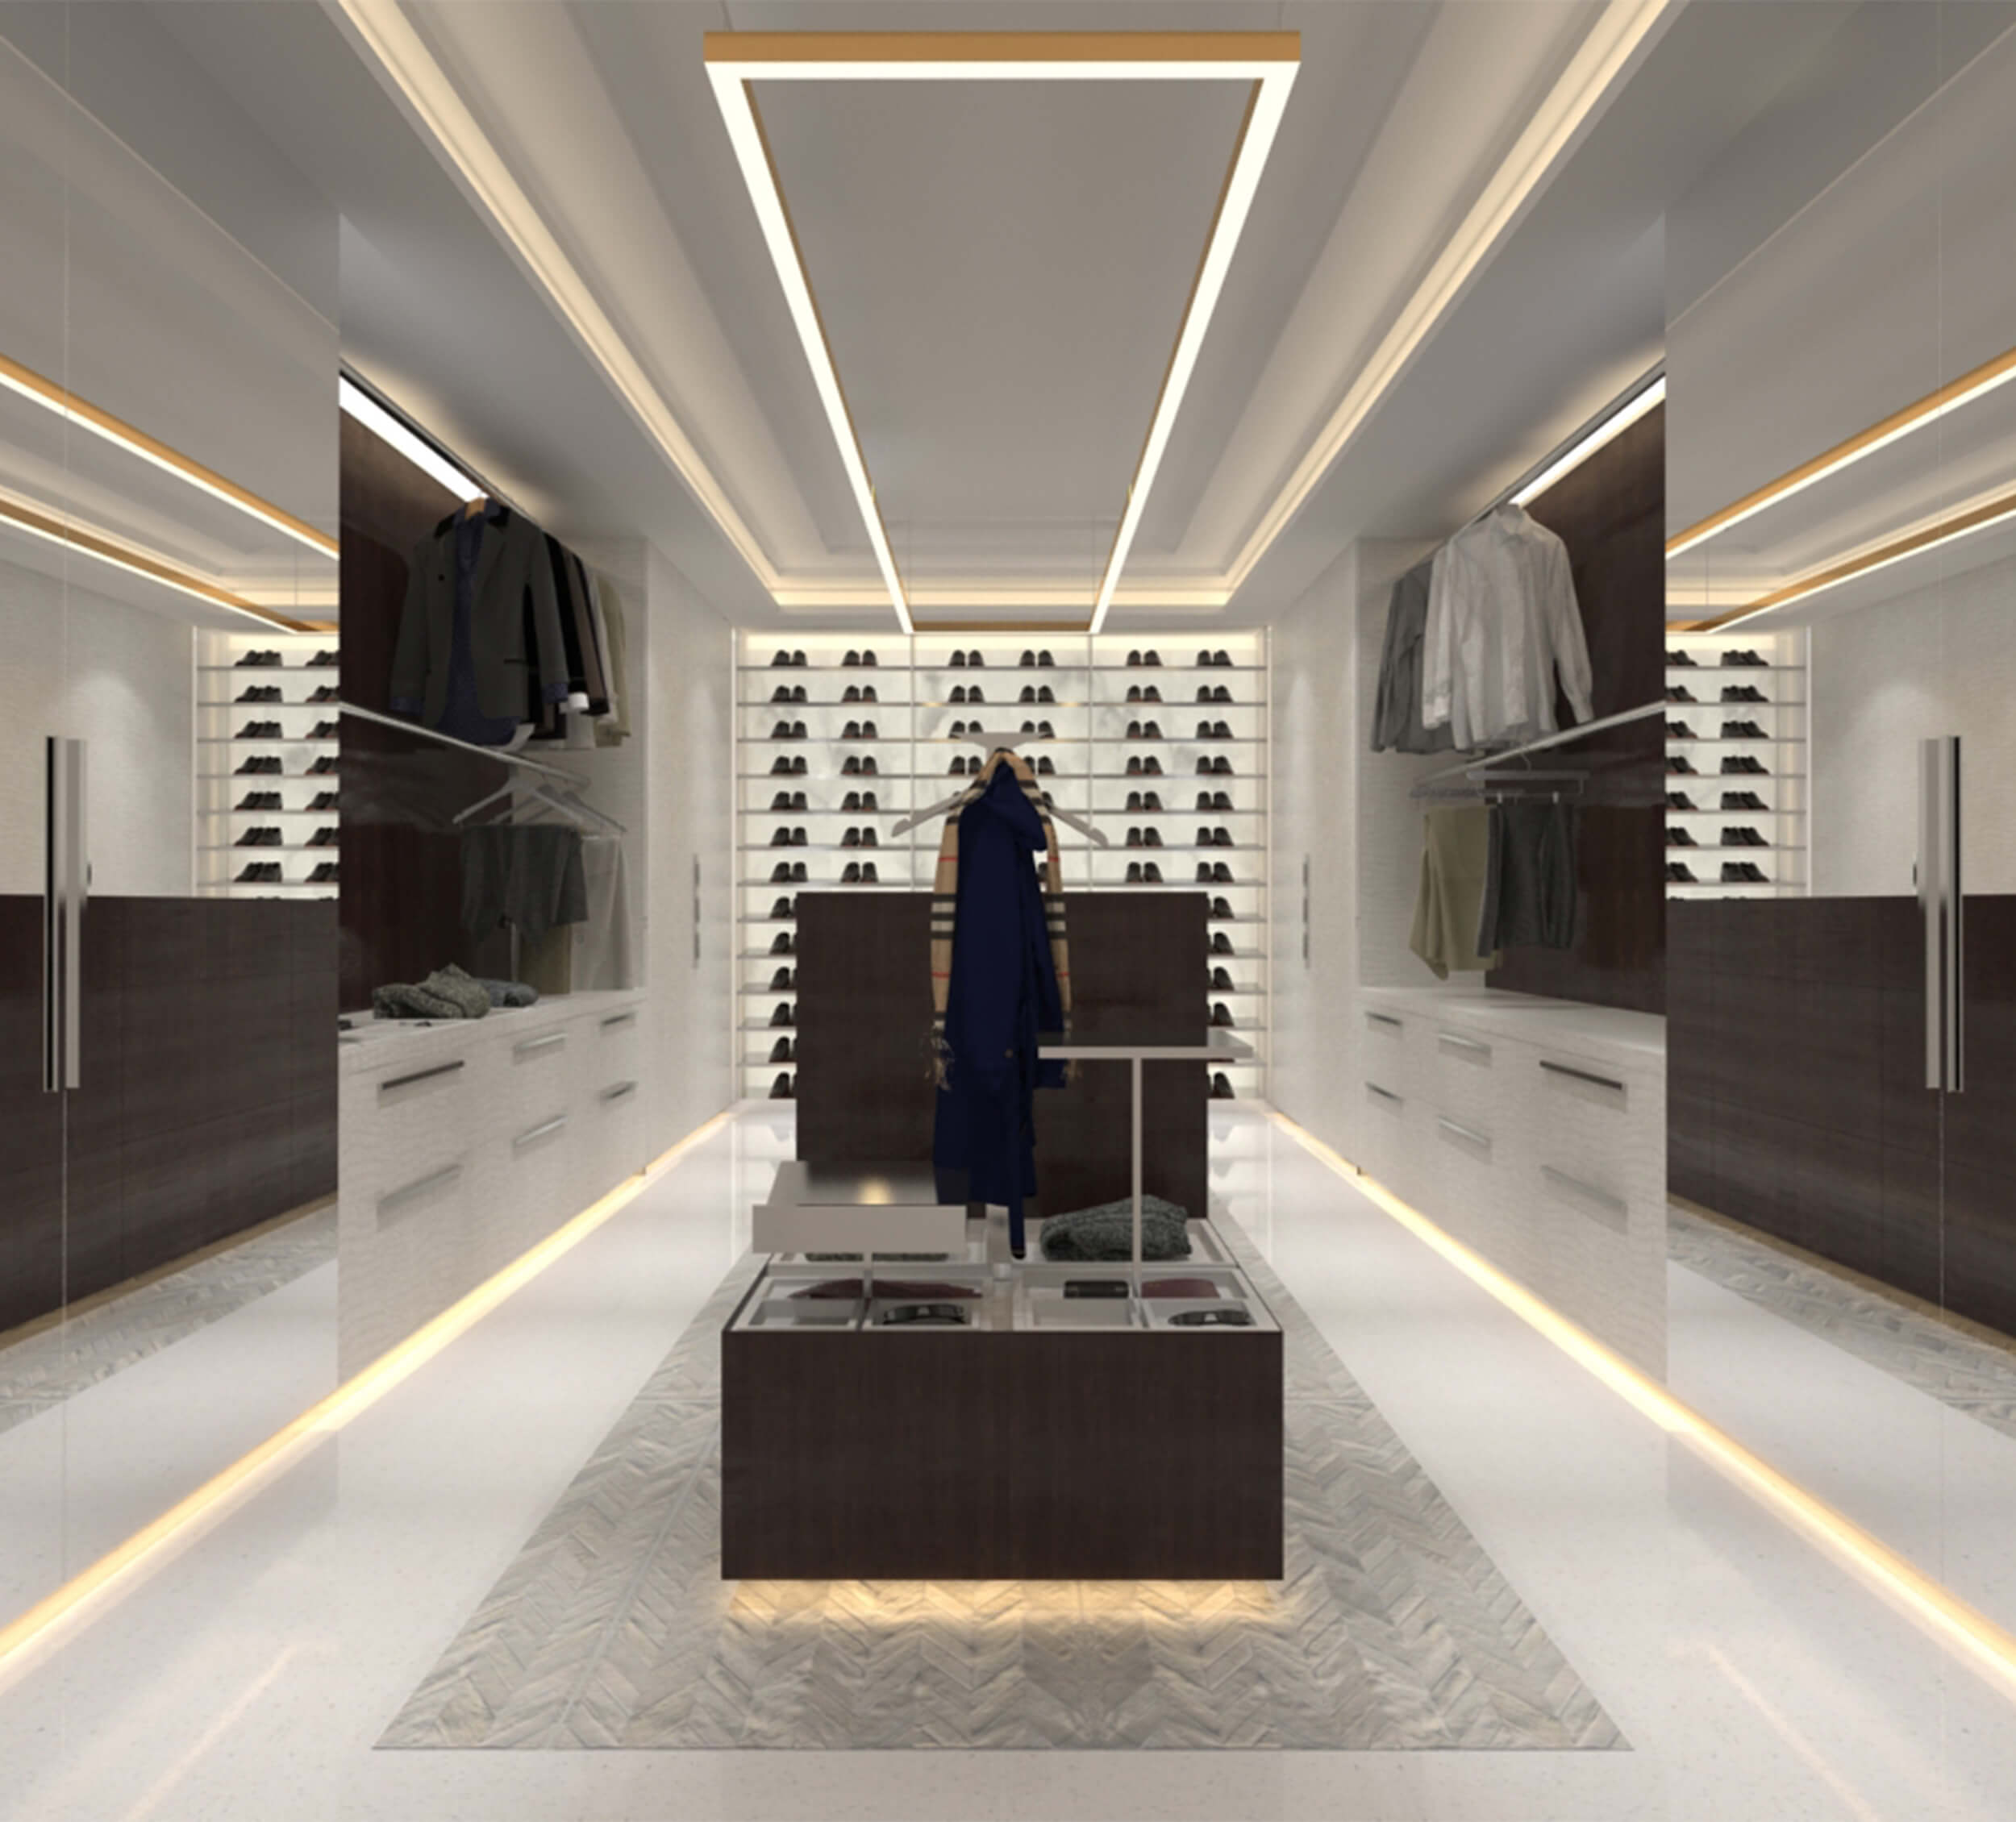 Master bedroom closet design by Britto Charette for the PH at Ritz Carlton Residences in Sunny Isles Beach